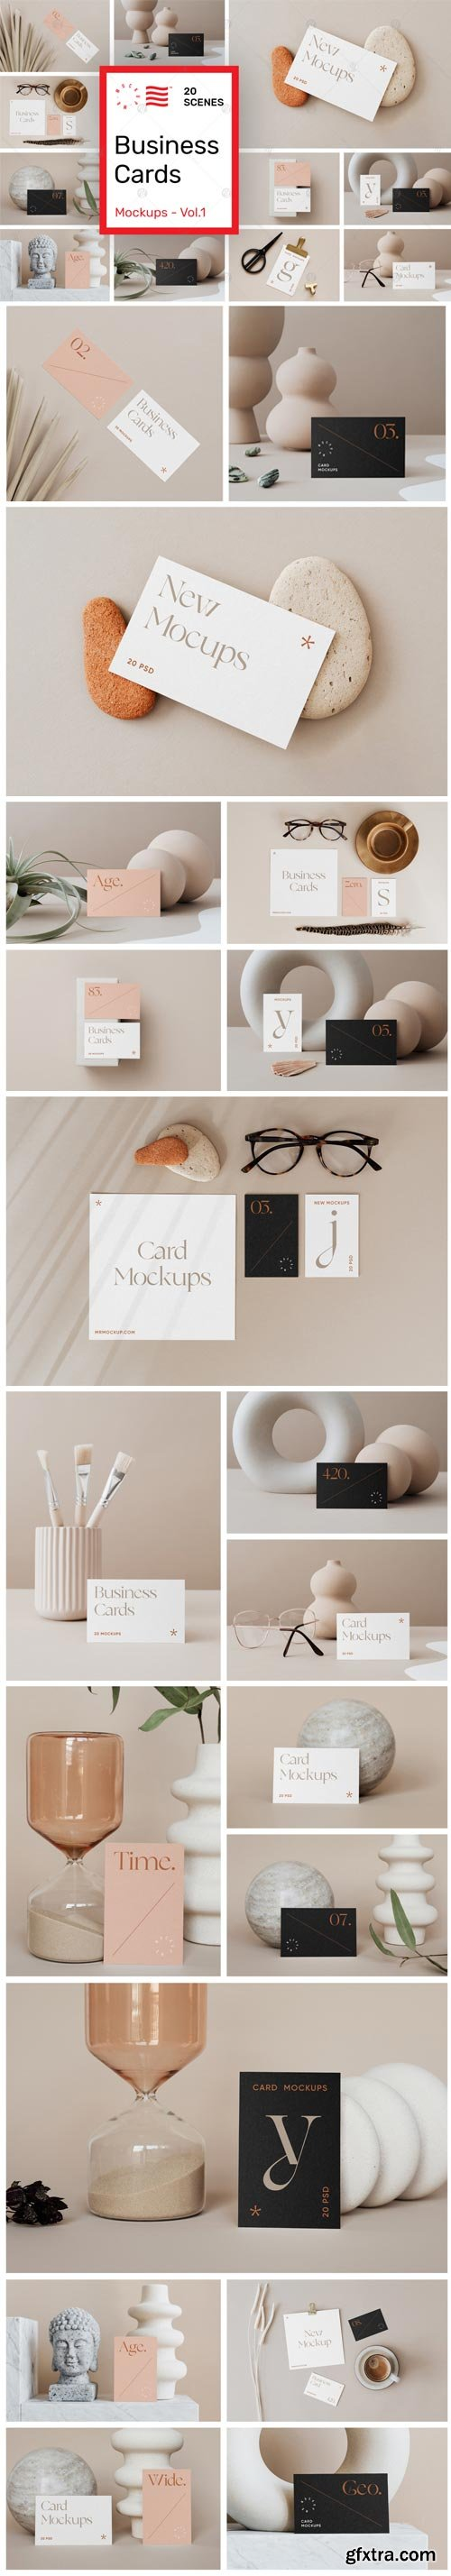 YellowImages - Business Card Mockups Vol.1 - 83760